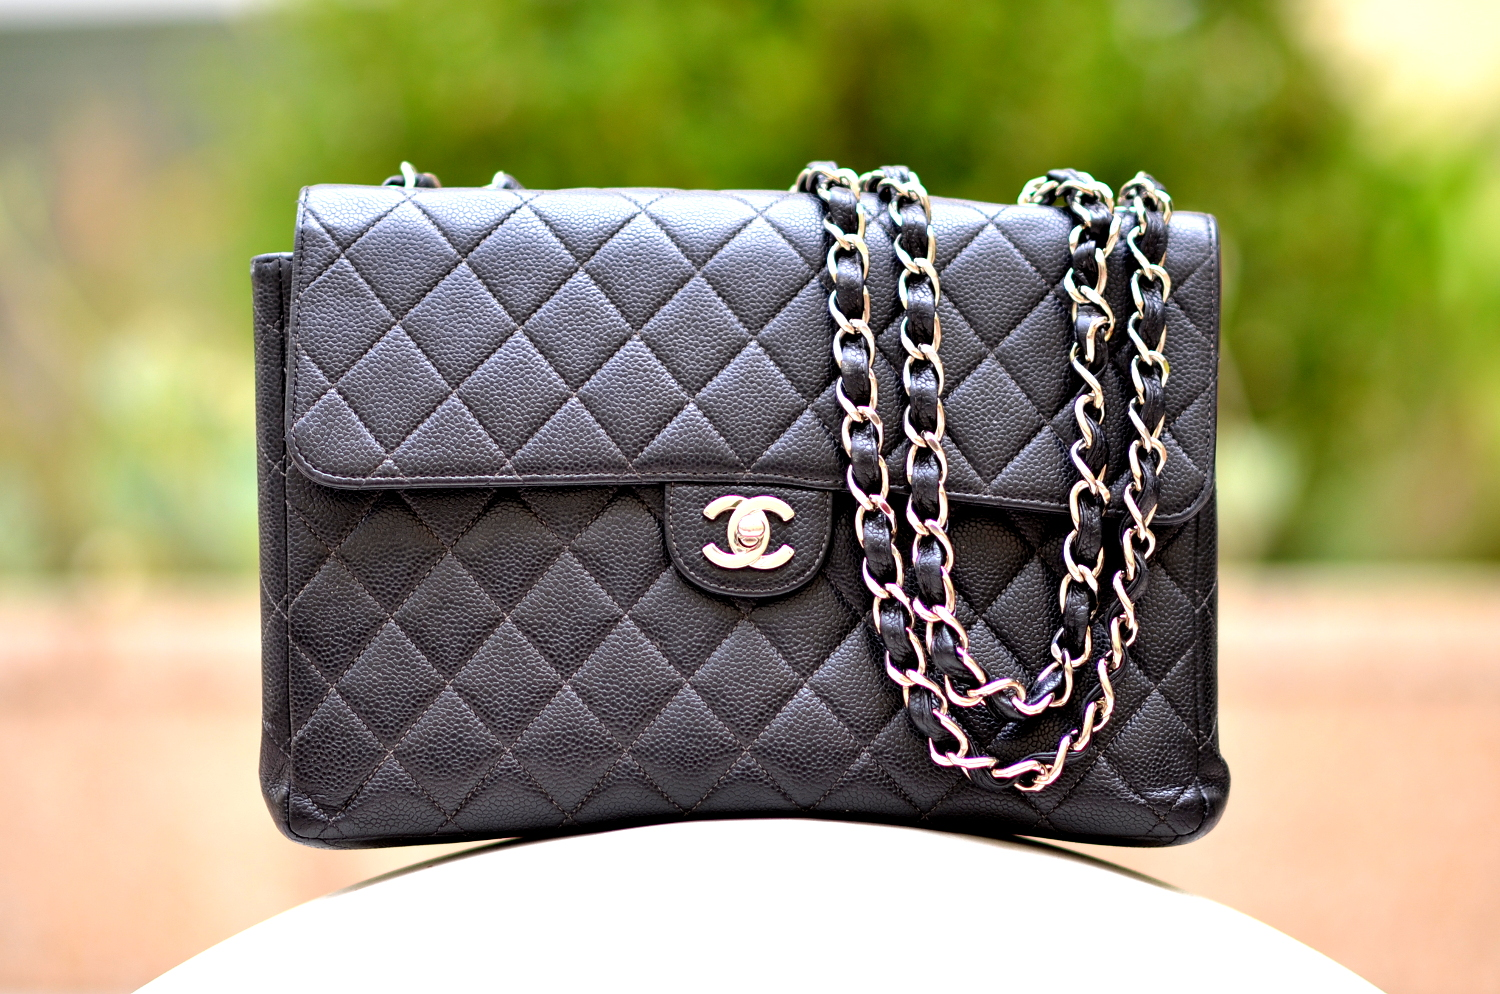 40501a2e9bc462 Outfit with Black Chanel Caviar Classic Jumbo Flap Bag | Lollipuff